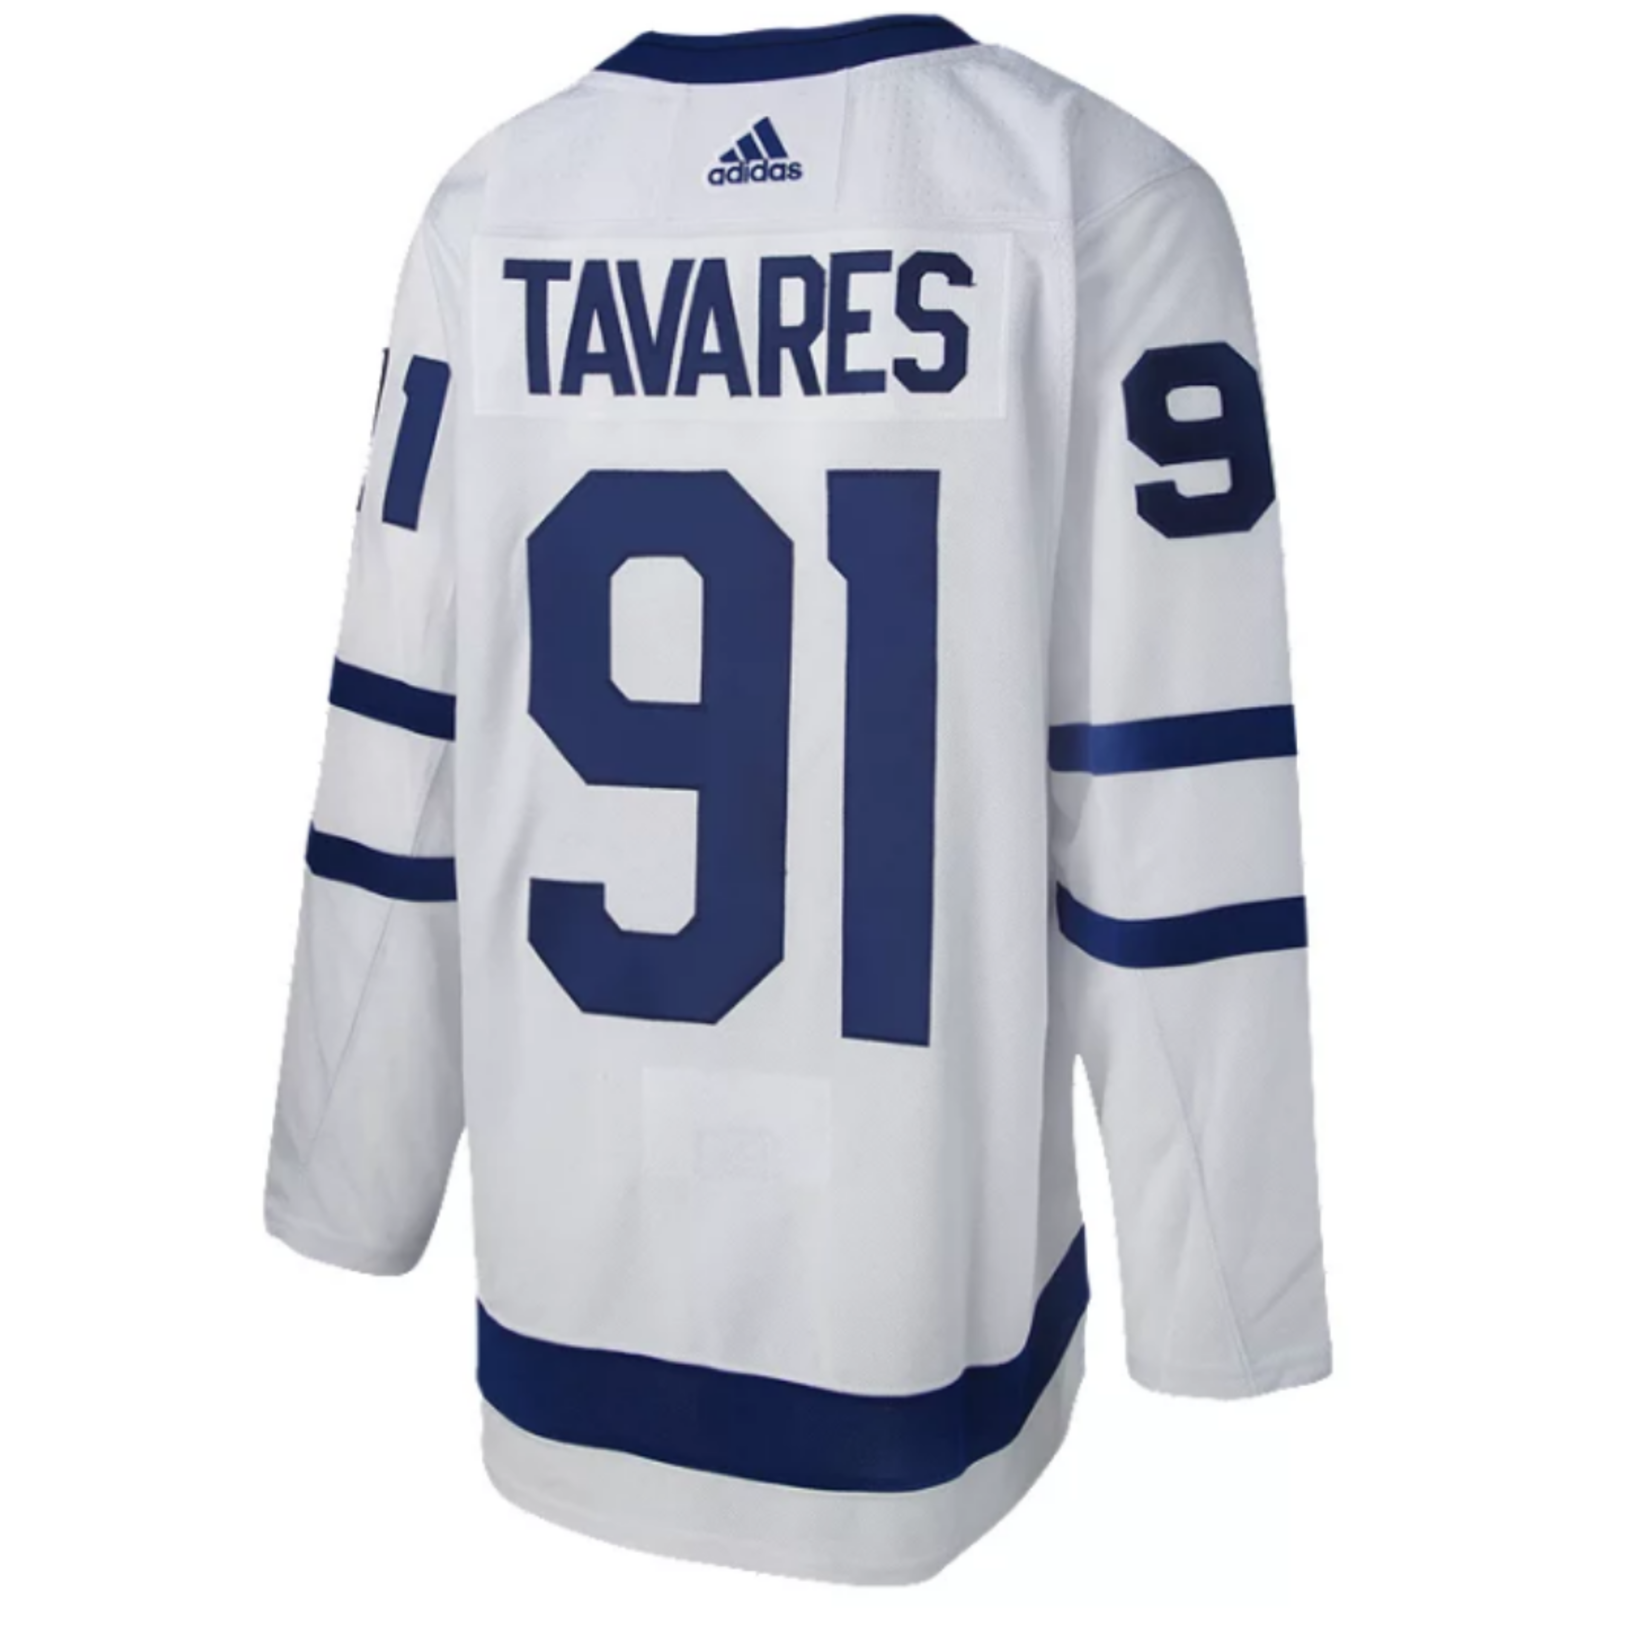 NHL Authentic Player Jersey-White